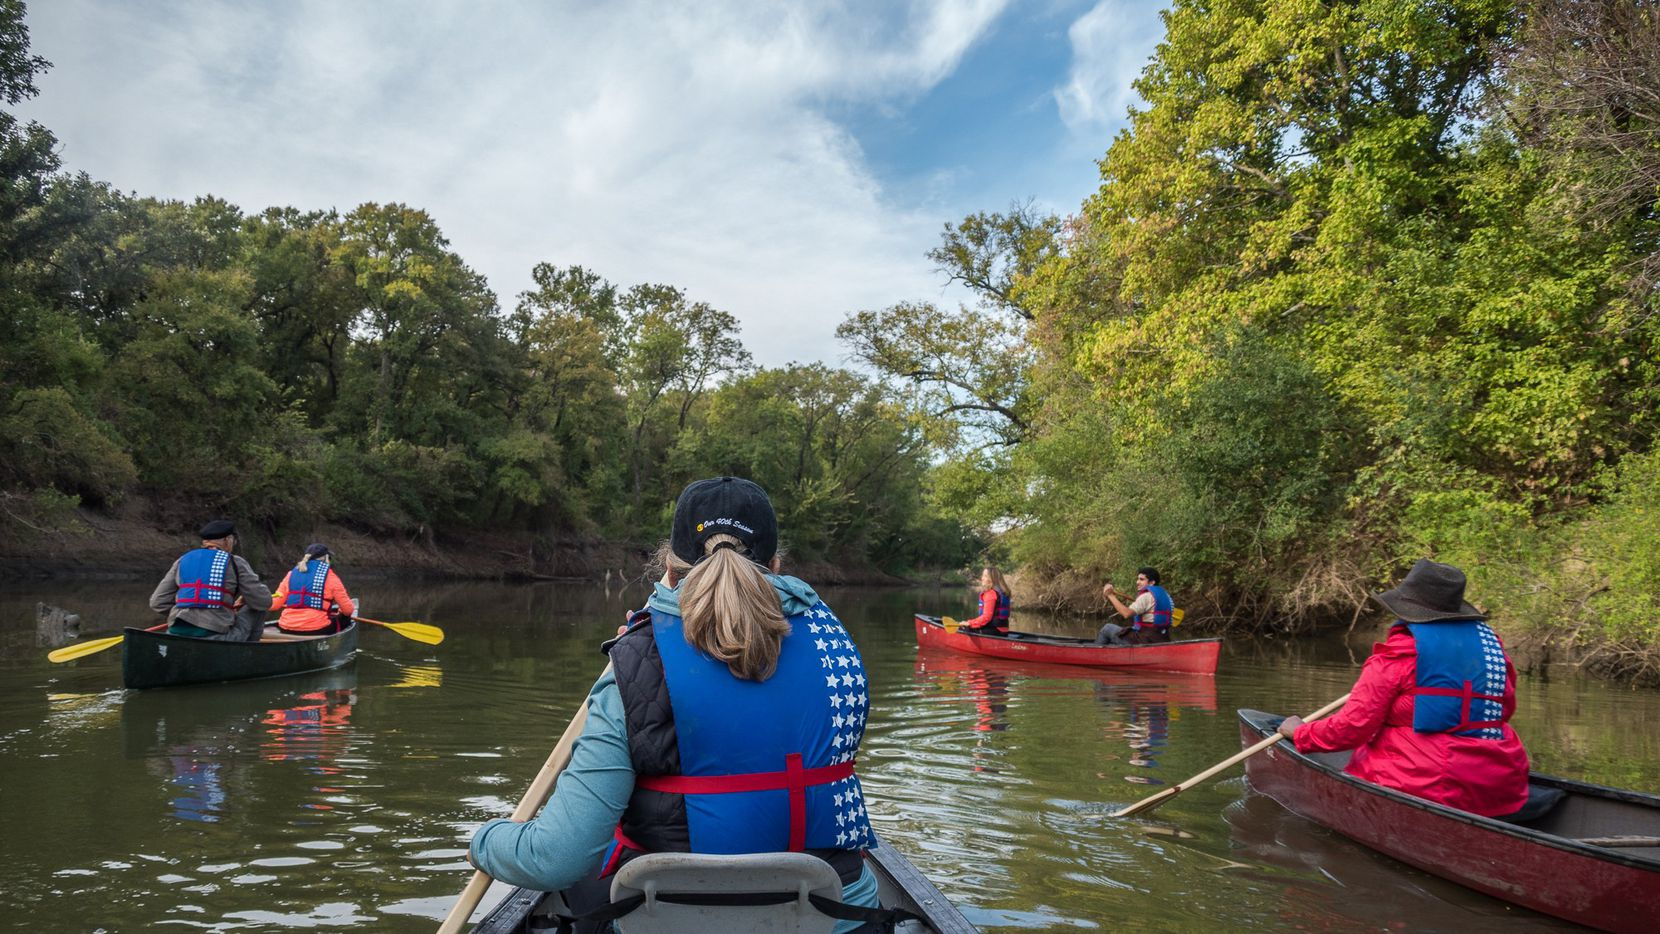 Canoeing on the Trinity River is just one of the activities available at the Frasier Dam Recreational Area in Dallas.